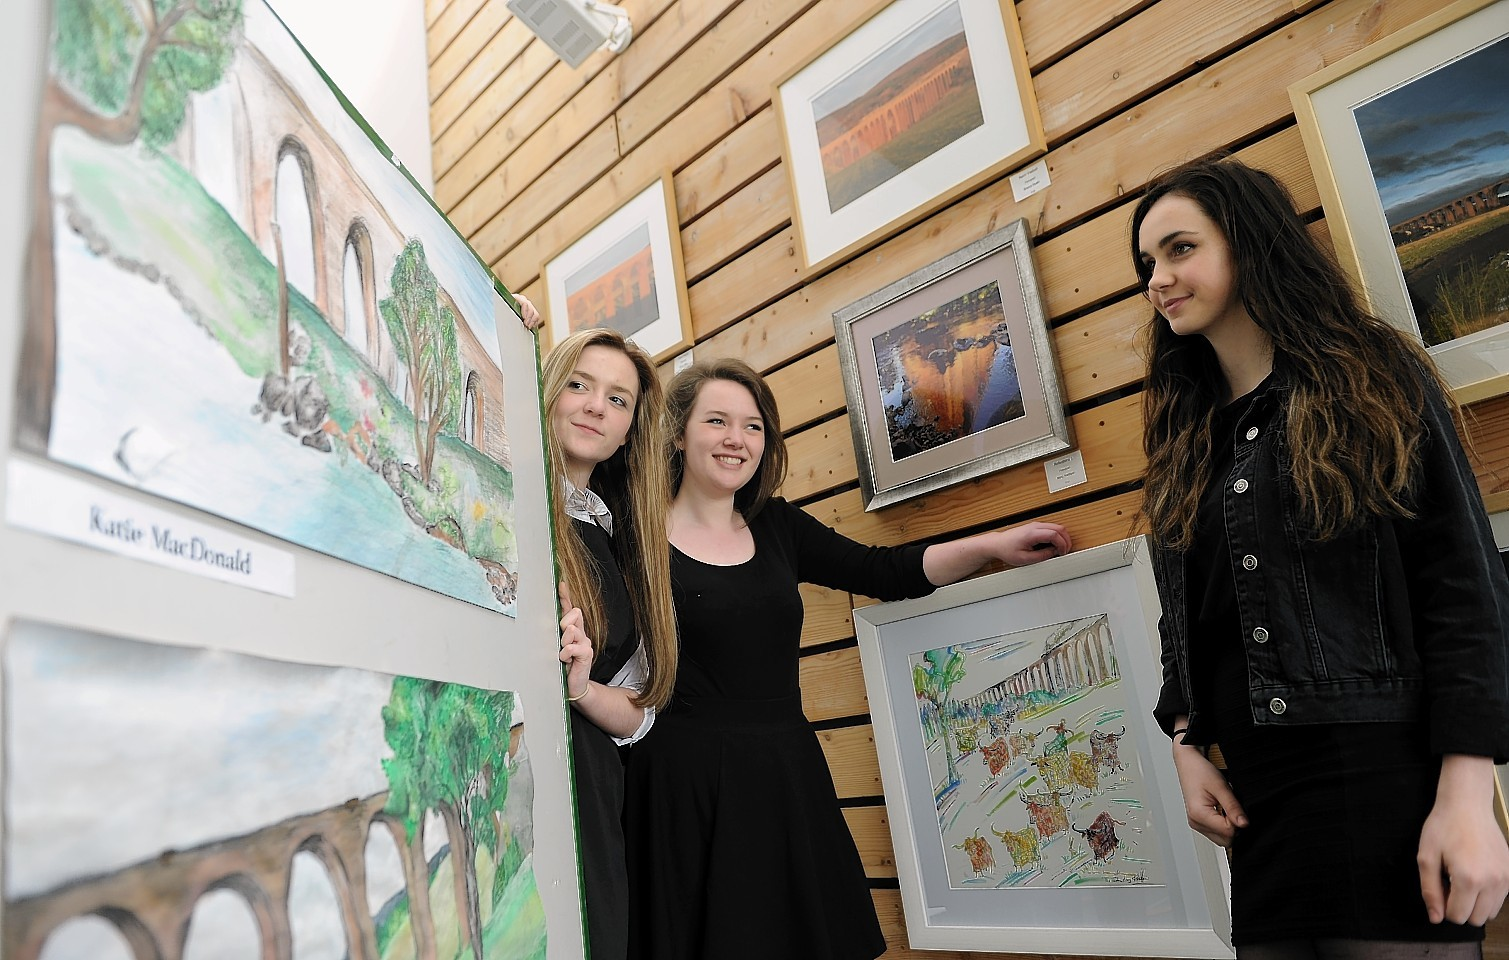 Pupils of Culloden Academy (L-R) Chelsea MacGillivray, Katie MacDonald and Susie Hay with some of their works and that of other artists on show at the Culloden Visitor Centre following an art project on the Culloden Viaduct.